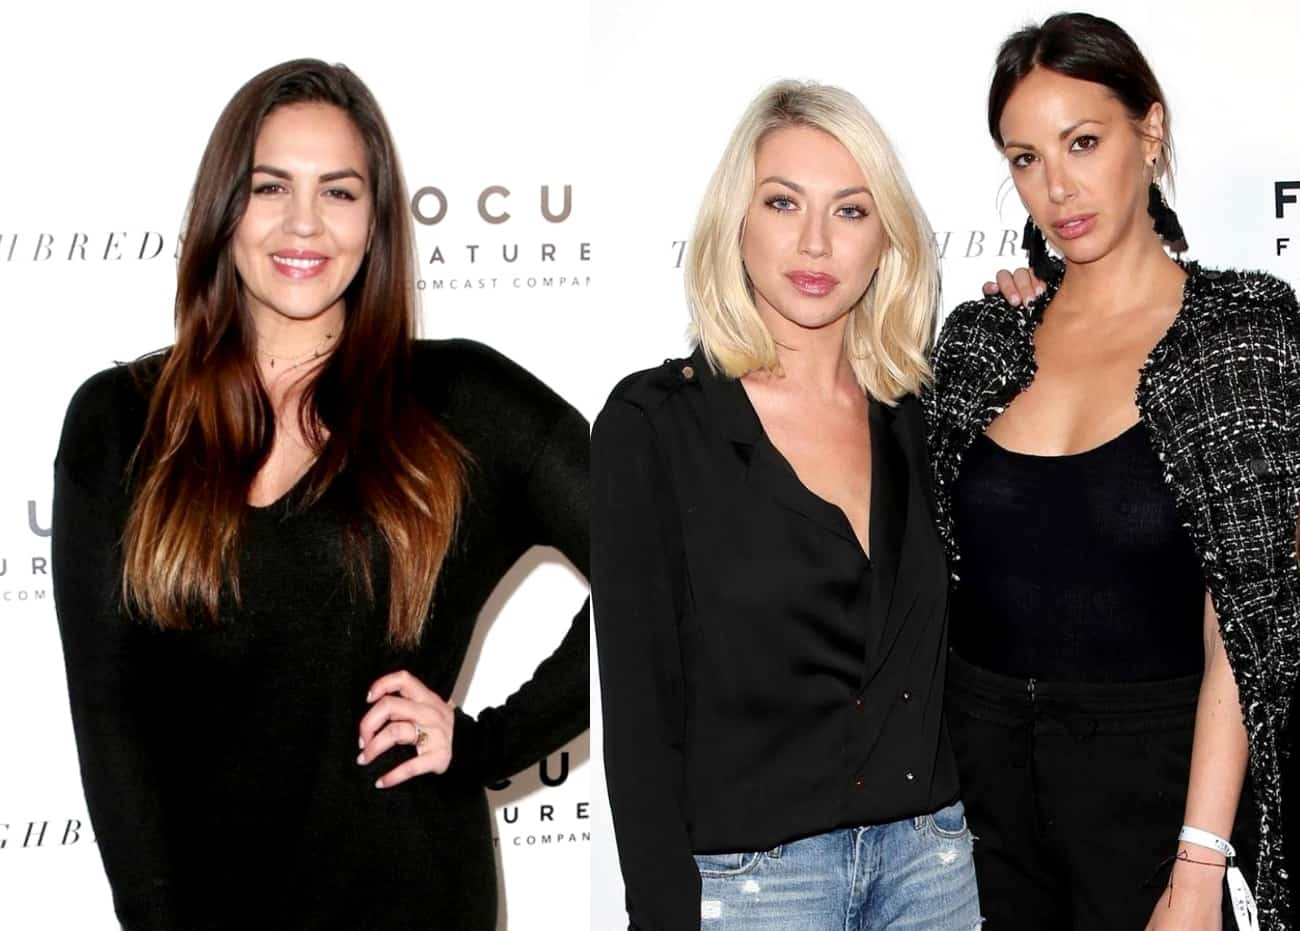 Vanderpump Rules' Katie Maloney Talks 'Shocking' Firing of Stassi Schroeder and Kristen Doute and Recalls the Moment She and Kristen Reconciled Their Friendship, Plus She Dishes on Recent Cast Getaway and Potential TomTom Spinoff